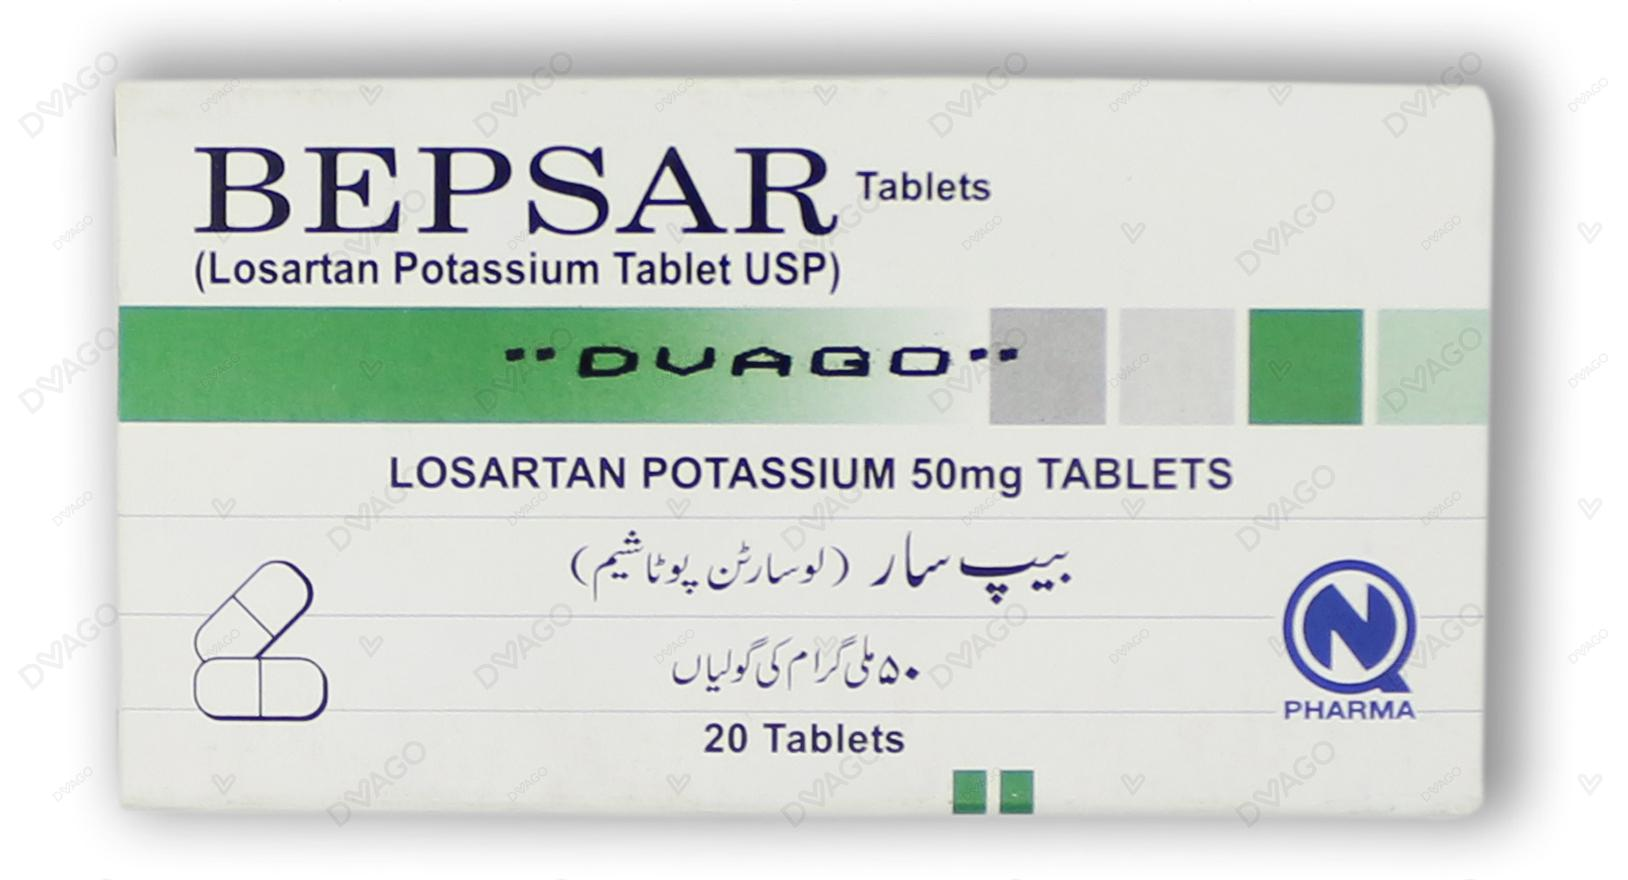 Bepsar Tablets 50mg 20's